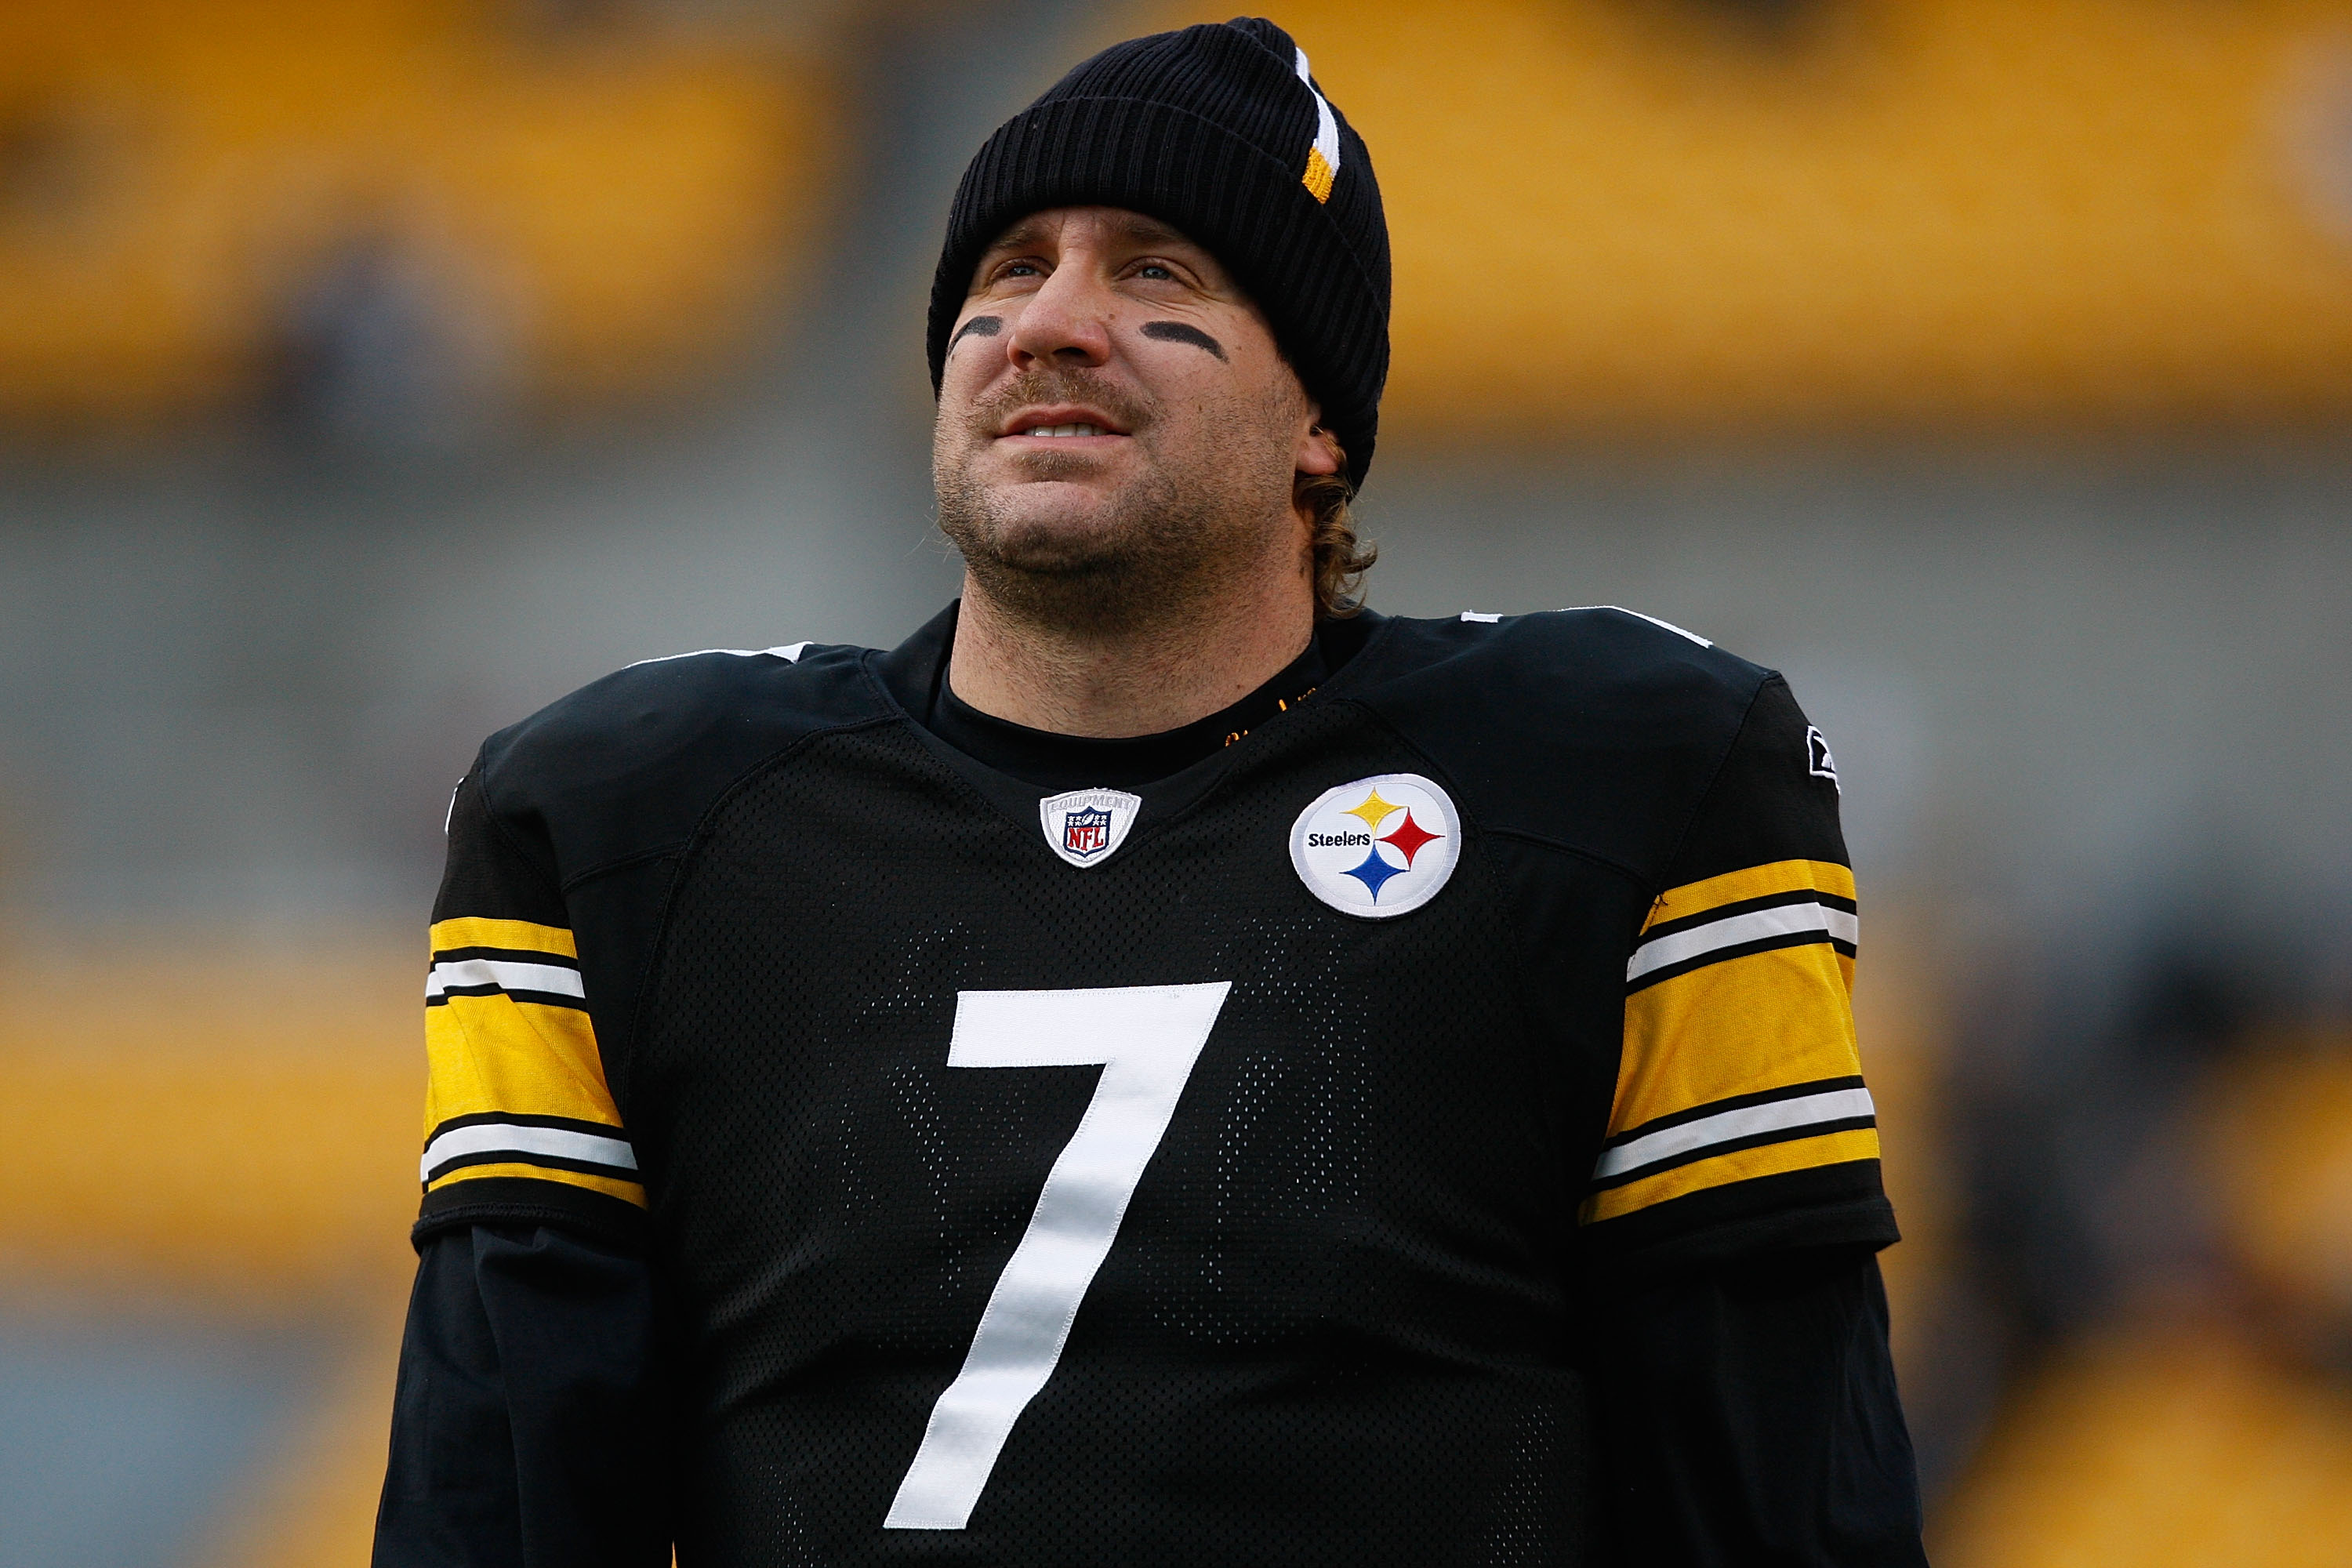 Ben Roethlisberger of the Pittsburgh Steelers warms up in 2009